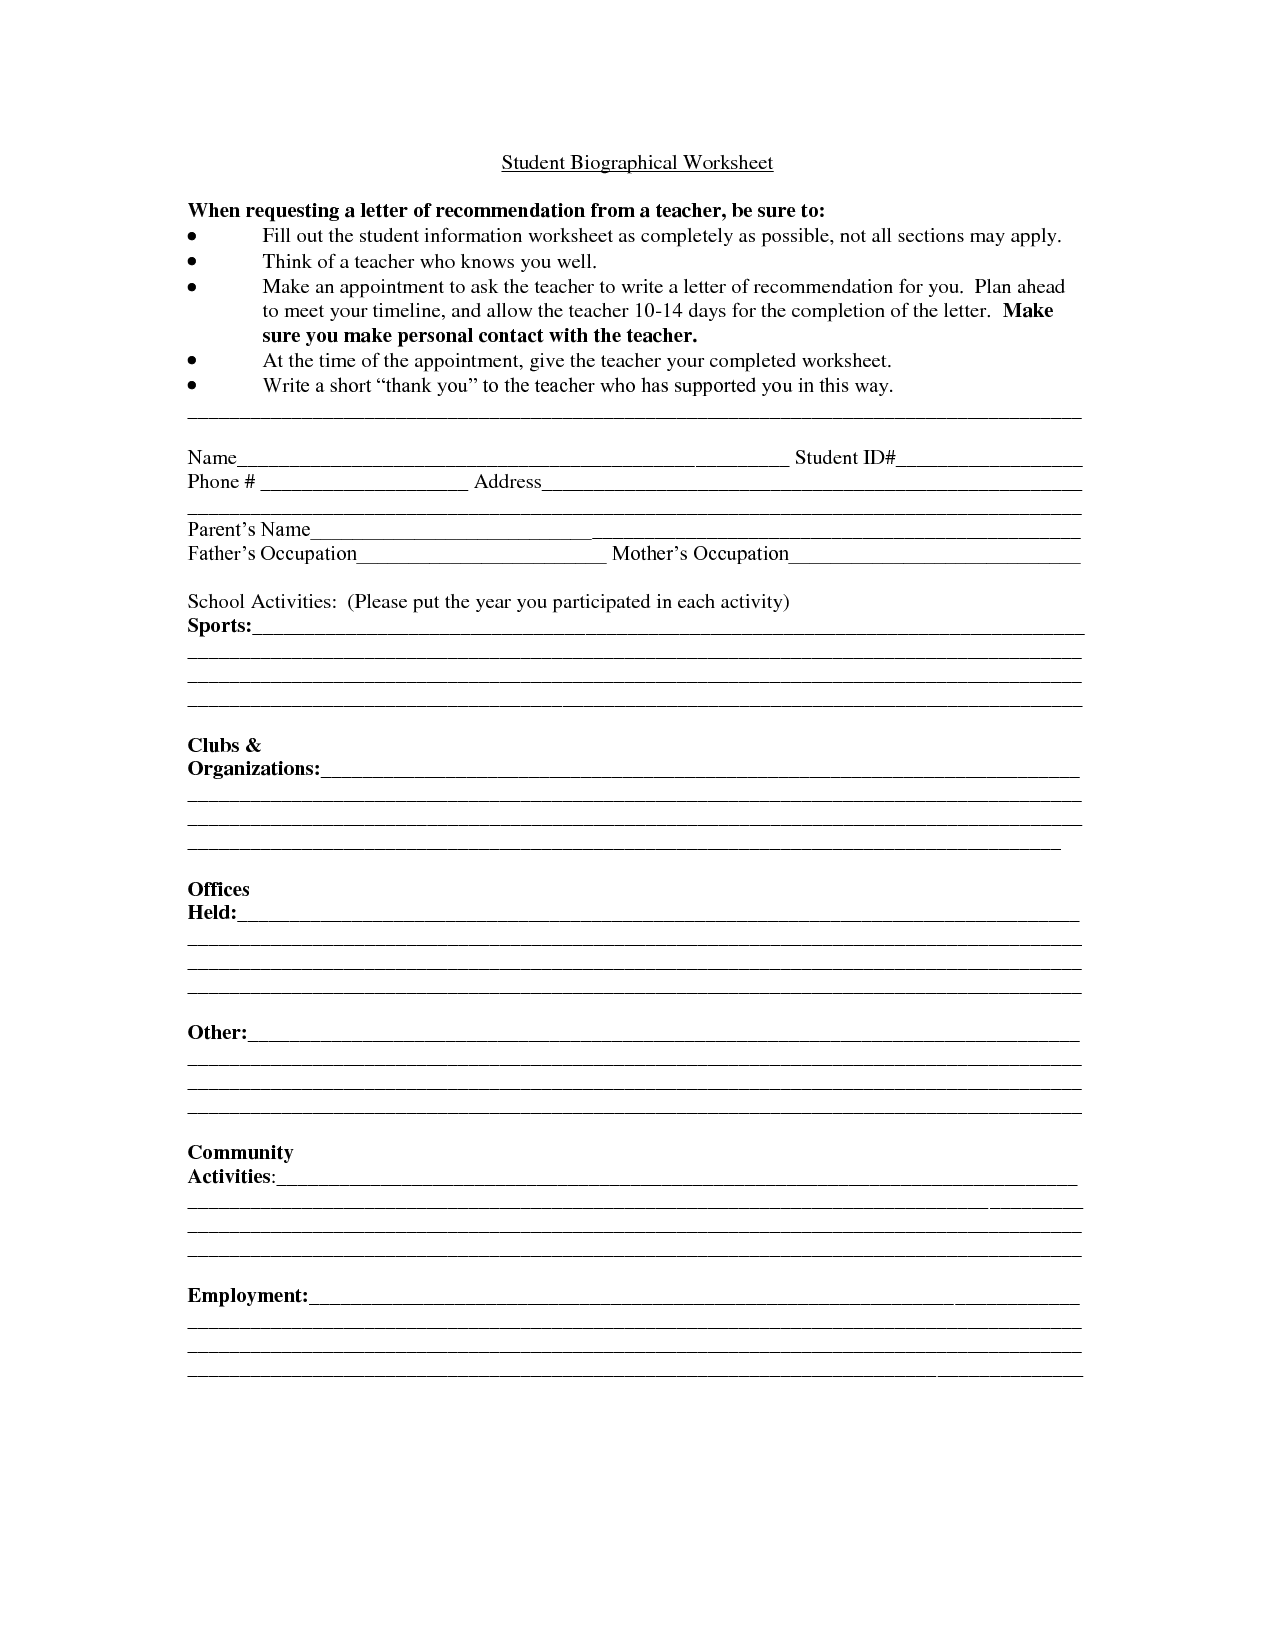 Basic Personal Information Worksheet